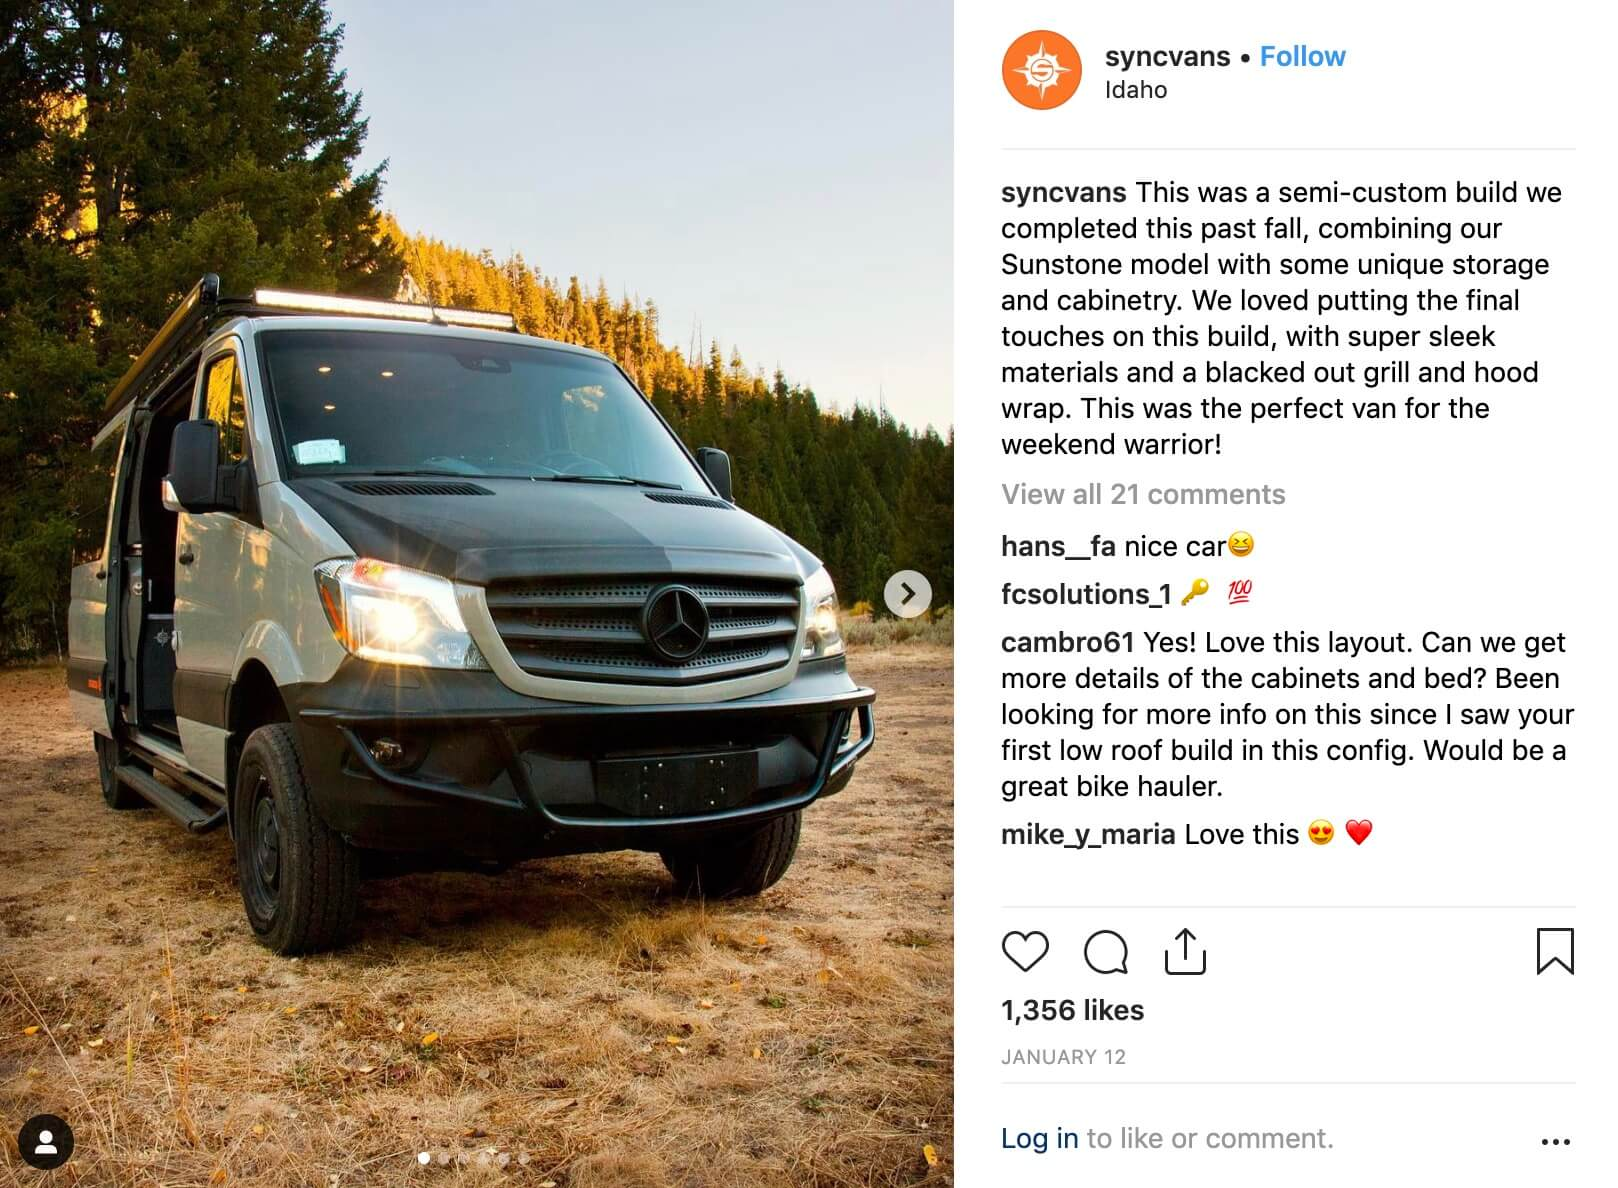 Storytelling through #VanLifeInstagram Management - We optimized SYNC's Instagram for growth by curating the industry's most popular community hashtags, posting authentic content, and maintaining an engaged fan base of users in particular lifestyle demographics.